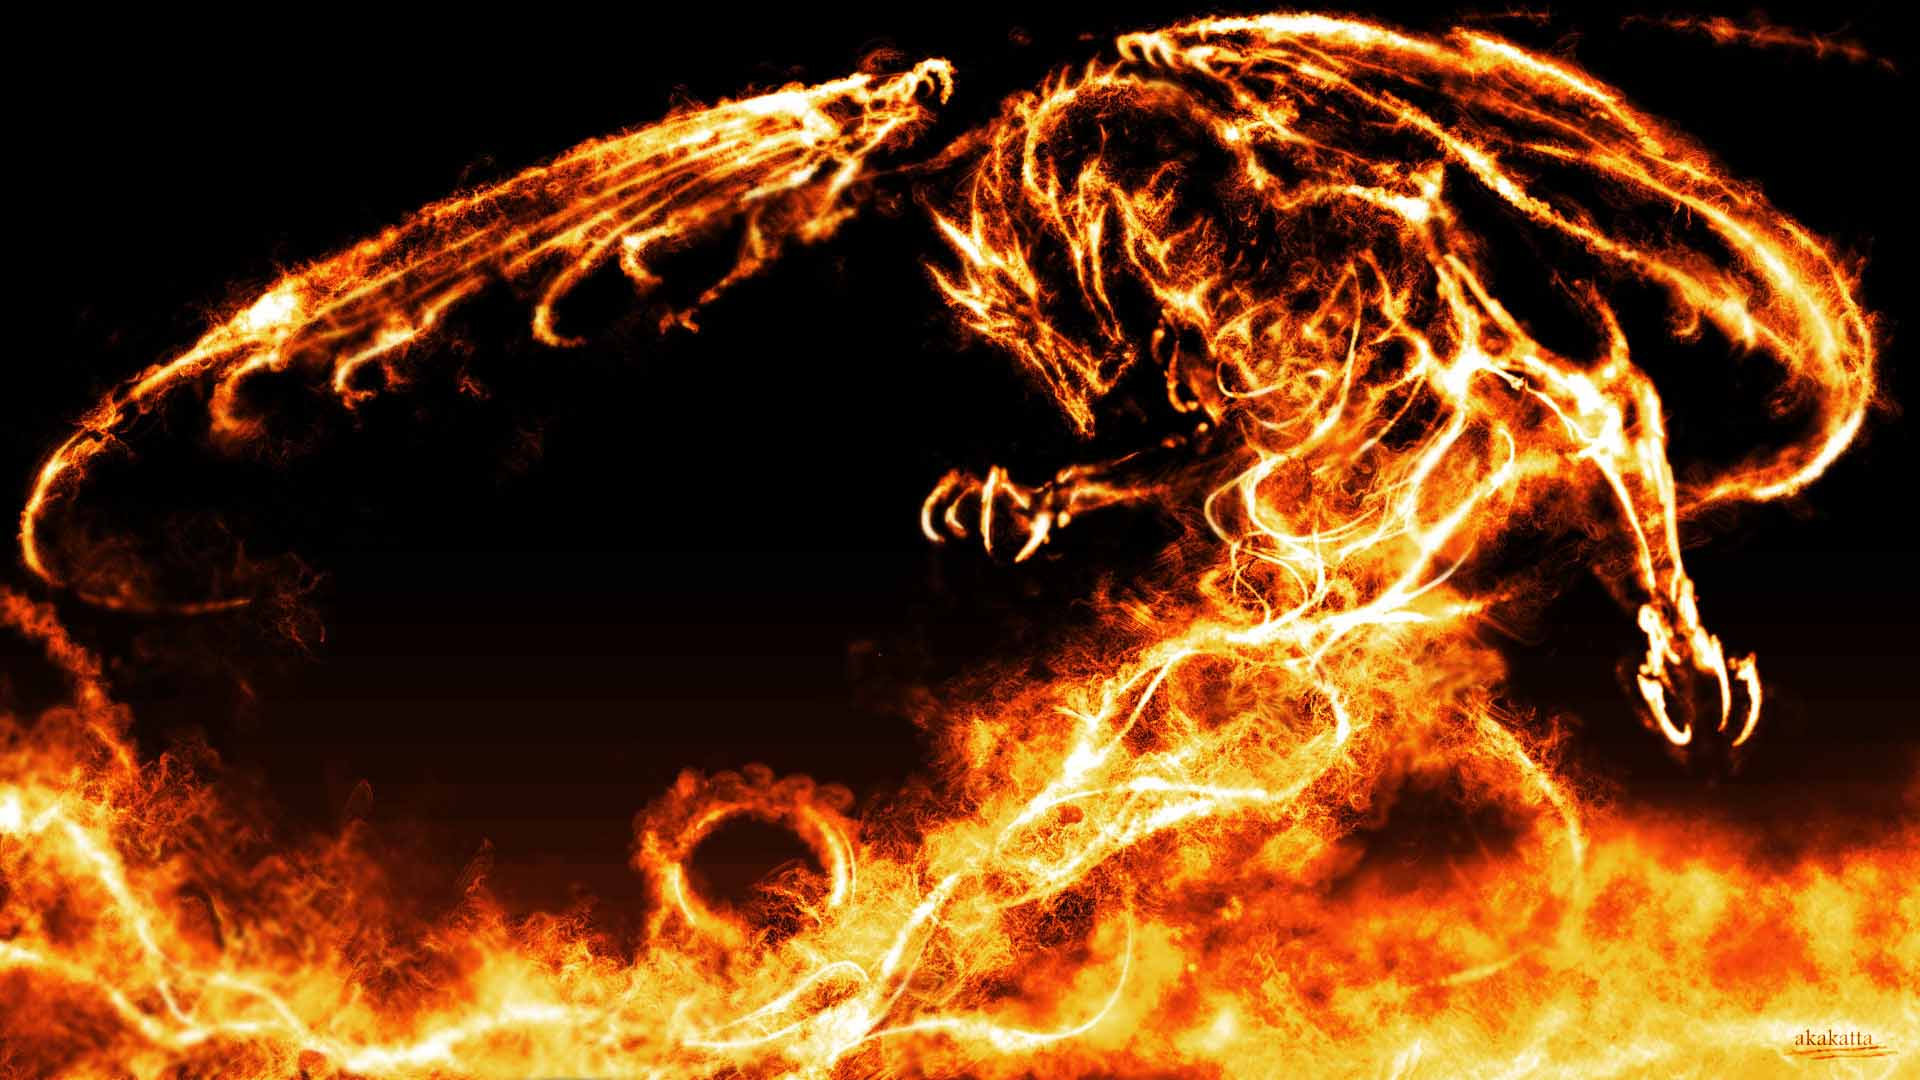 Collection of Dragon Hd Wallpaper on HDWallpapers